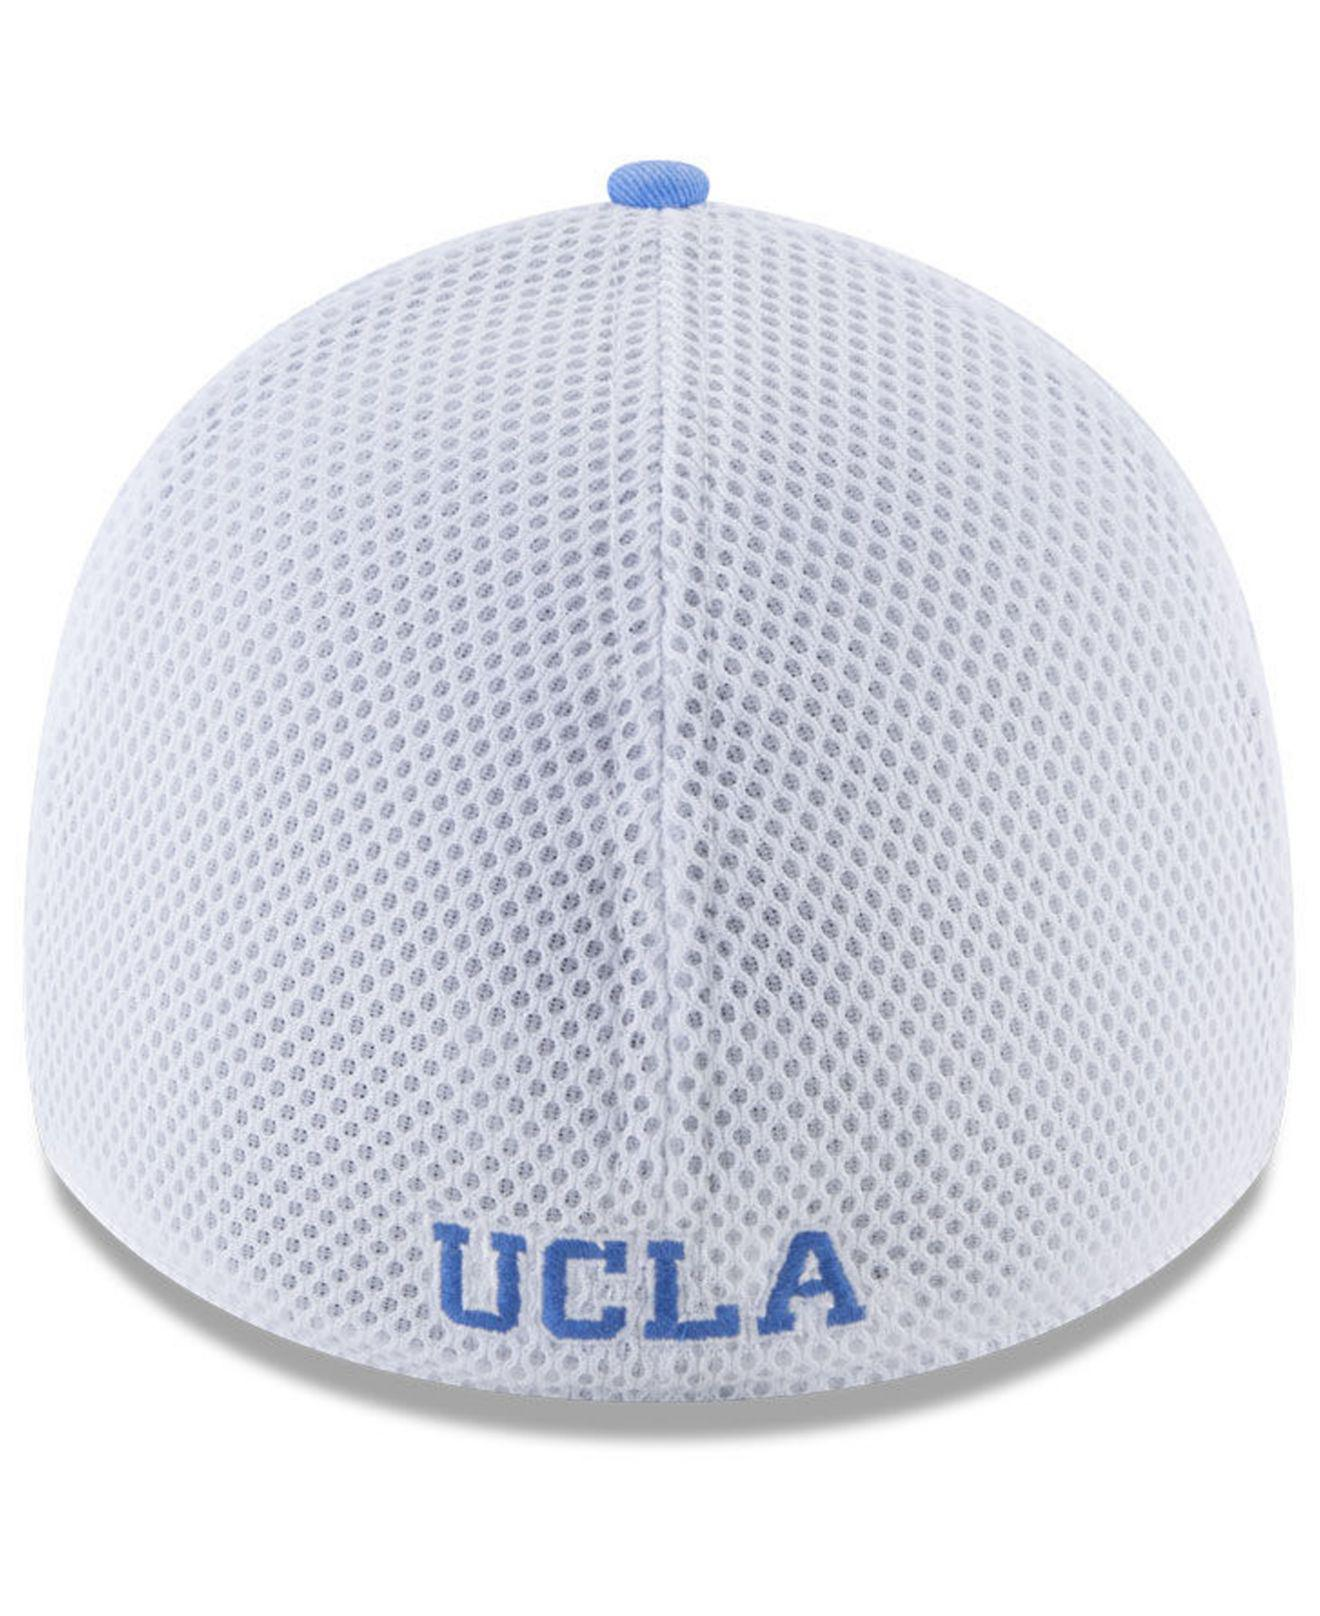 quality design 3429f f78ff ... italy ucla bruins washed neo 39thirty cap for men lyst. view fullscreen  a18f1 305c3